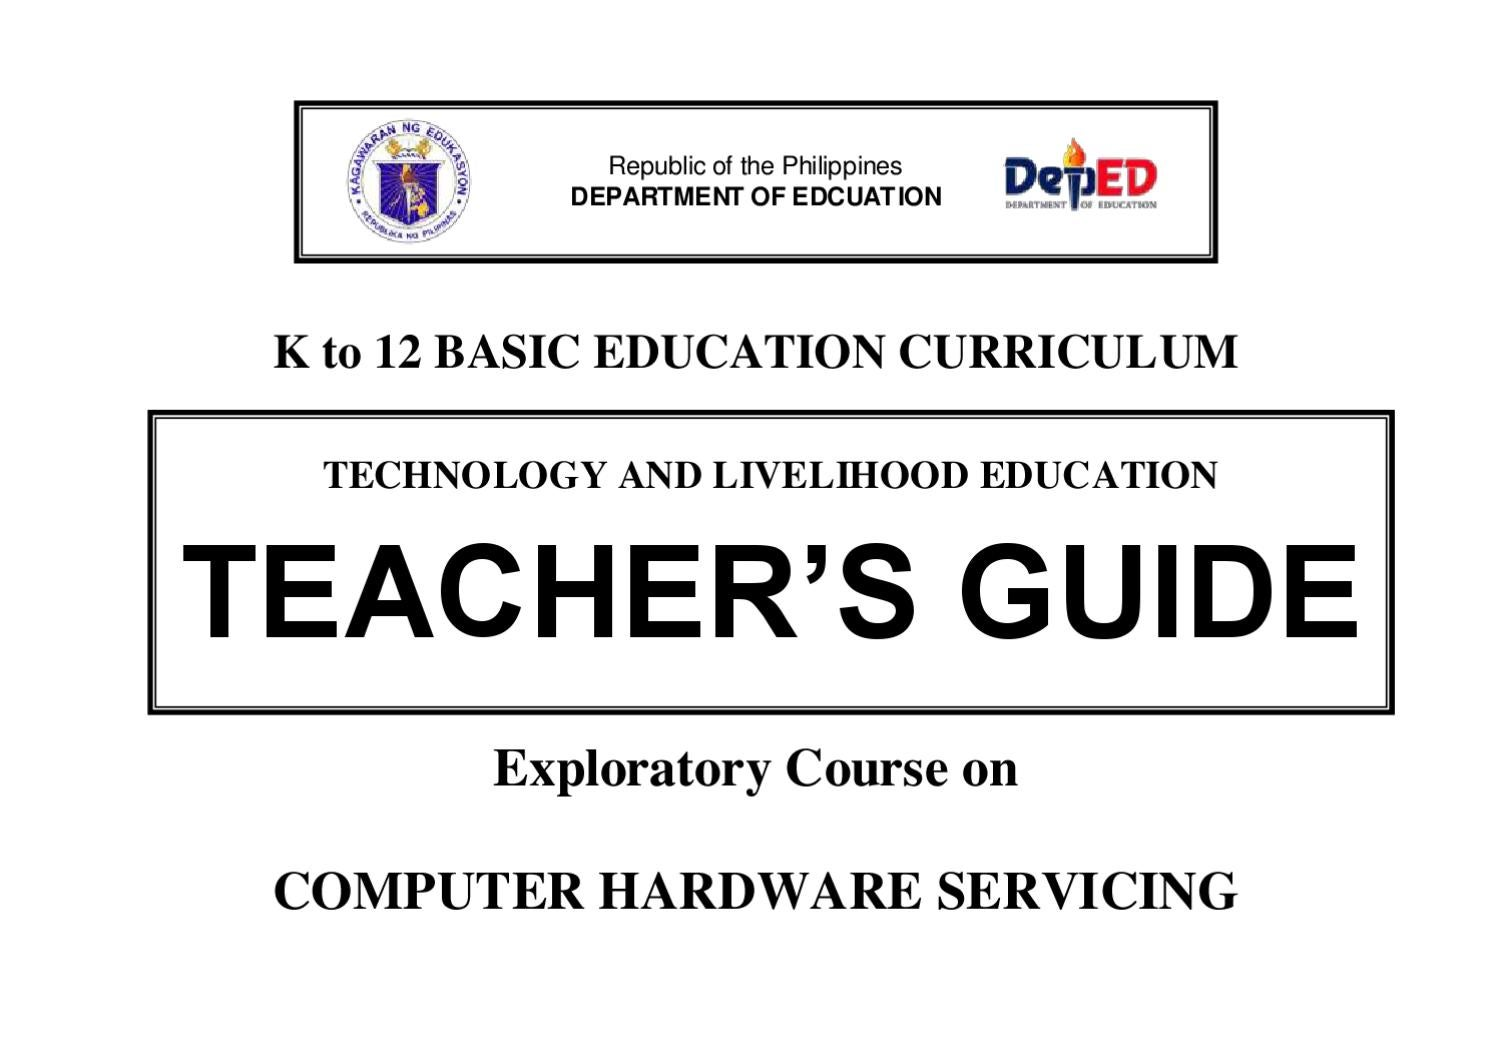 4th curriculum guide for religious education in the philippines ppt